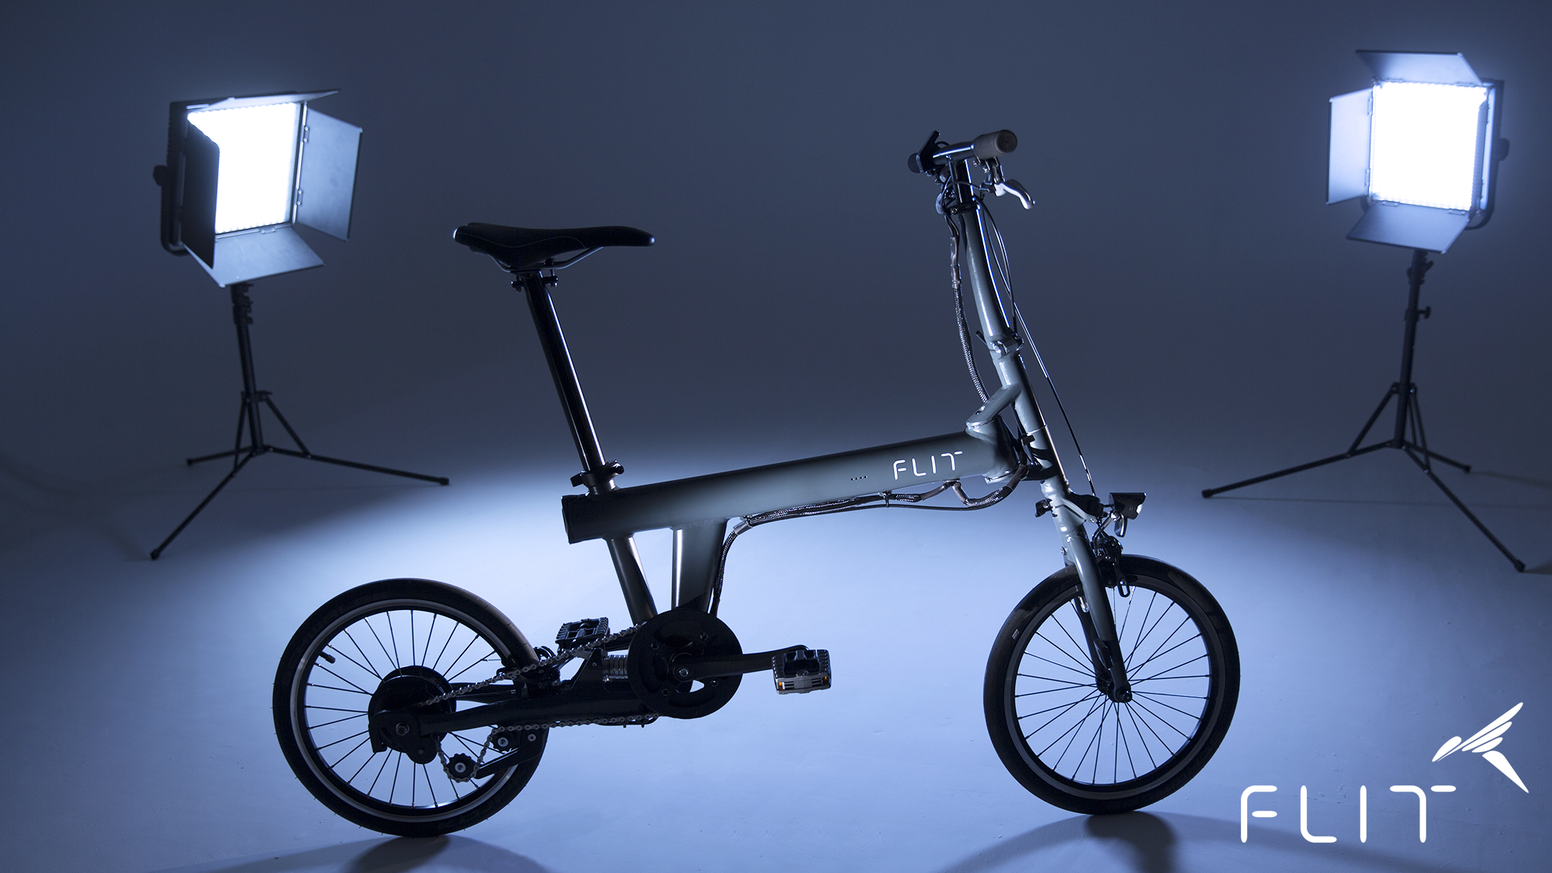 Flit through the city in style on an ebike that's incredible to ride, fast to fold and light to carry.